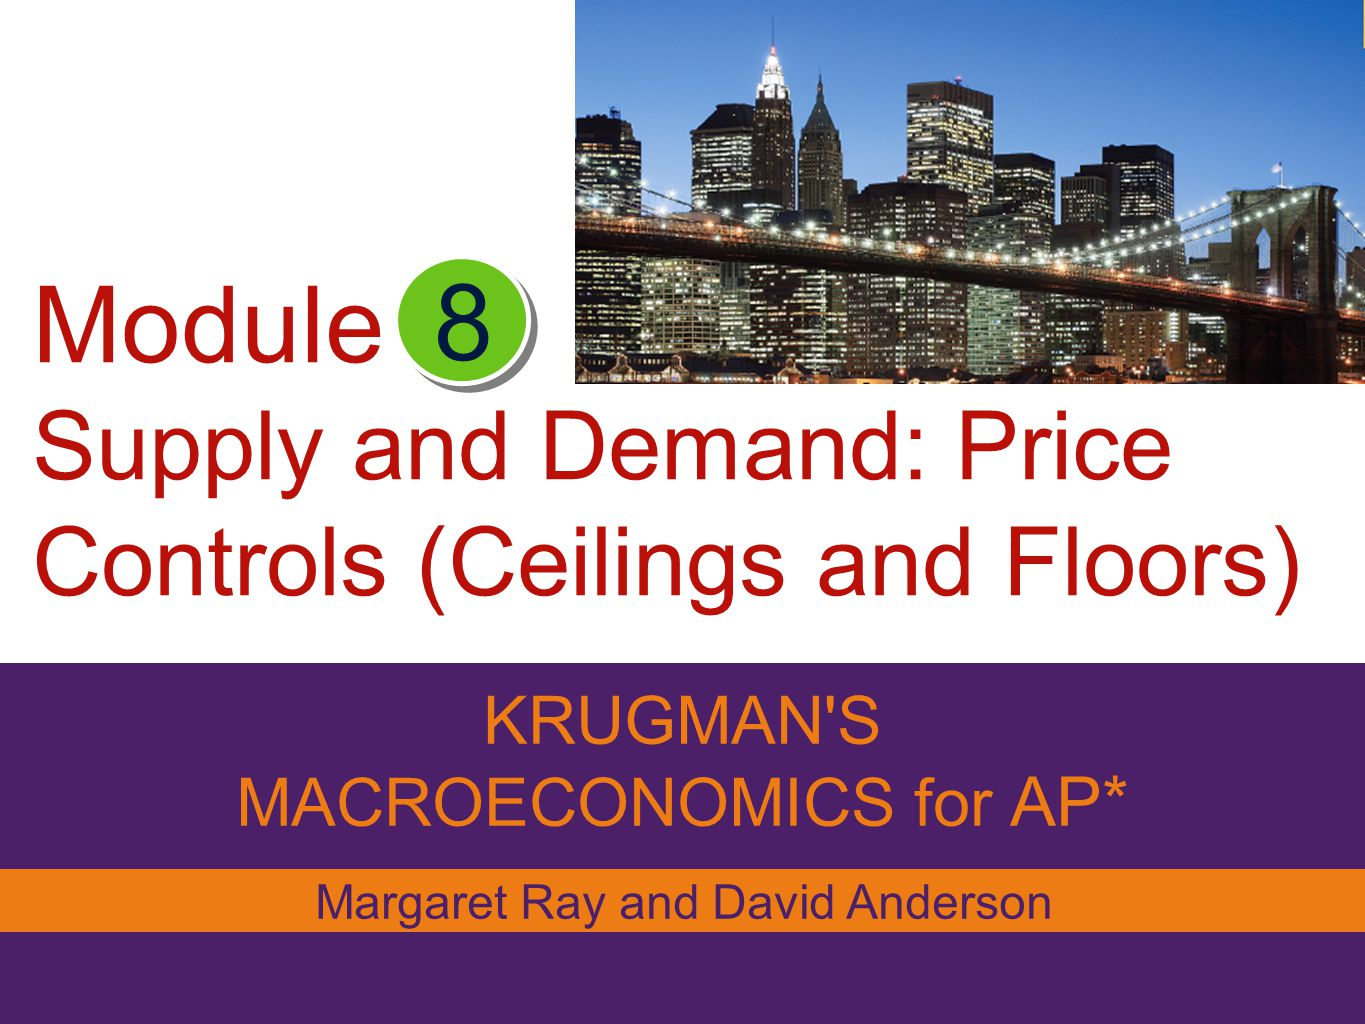 KRUGMAN'S MACROECONOMICS for AP* 8 Margaret Ray and David Anderson Module Supply and Demand: Price Controls (Ceilings and Floors)